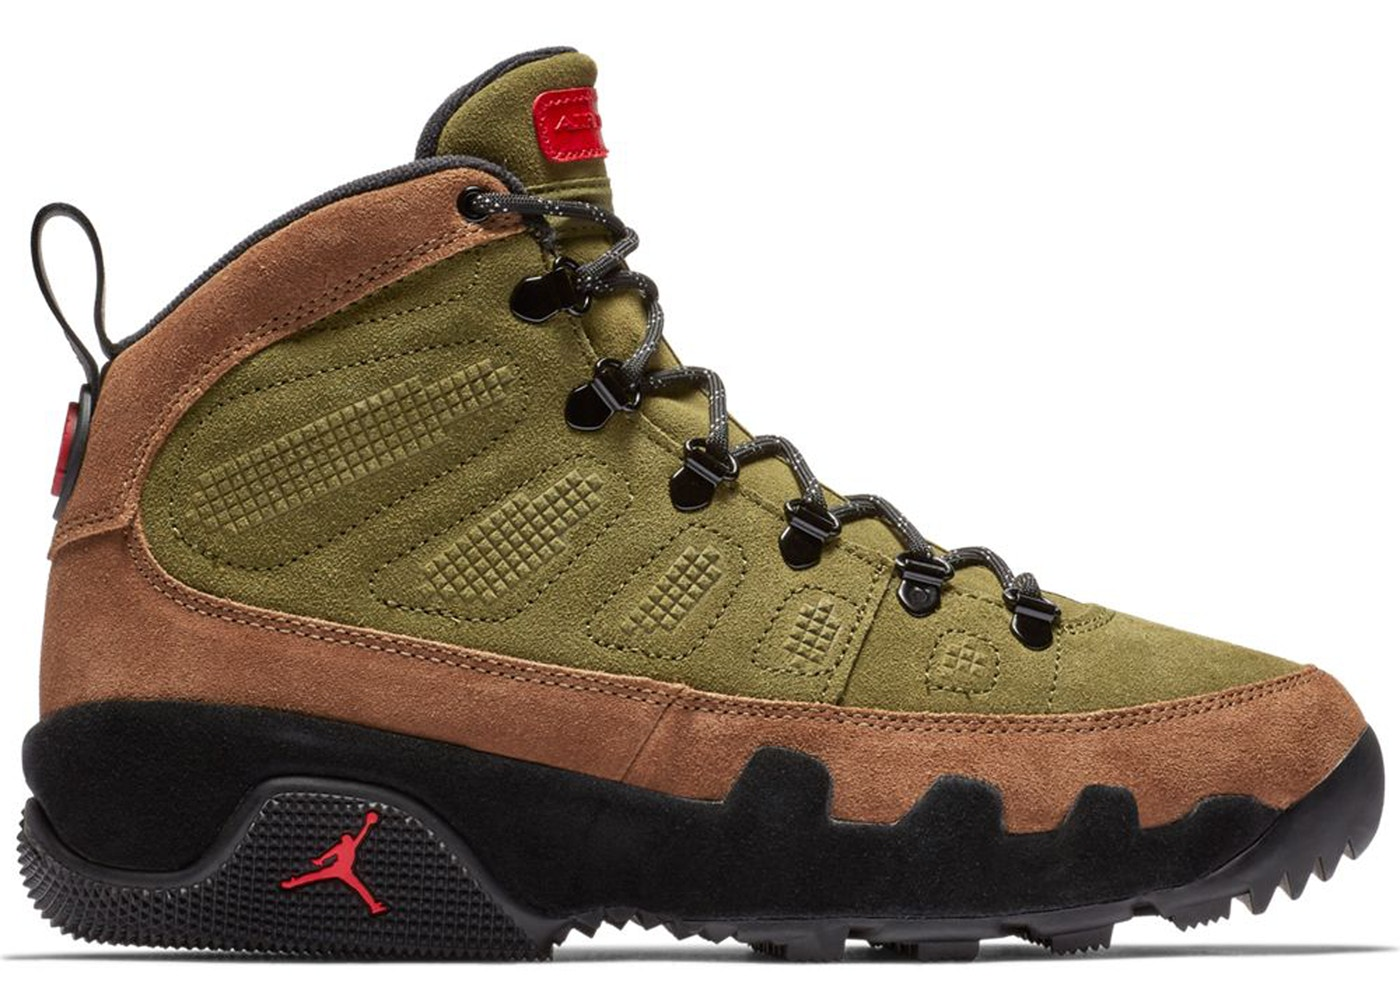 43b6c6377b95 Buy Air Jordan 9 Shoes   Deadstock Sneakers